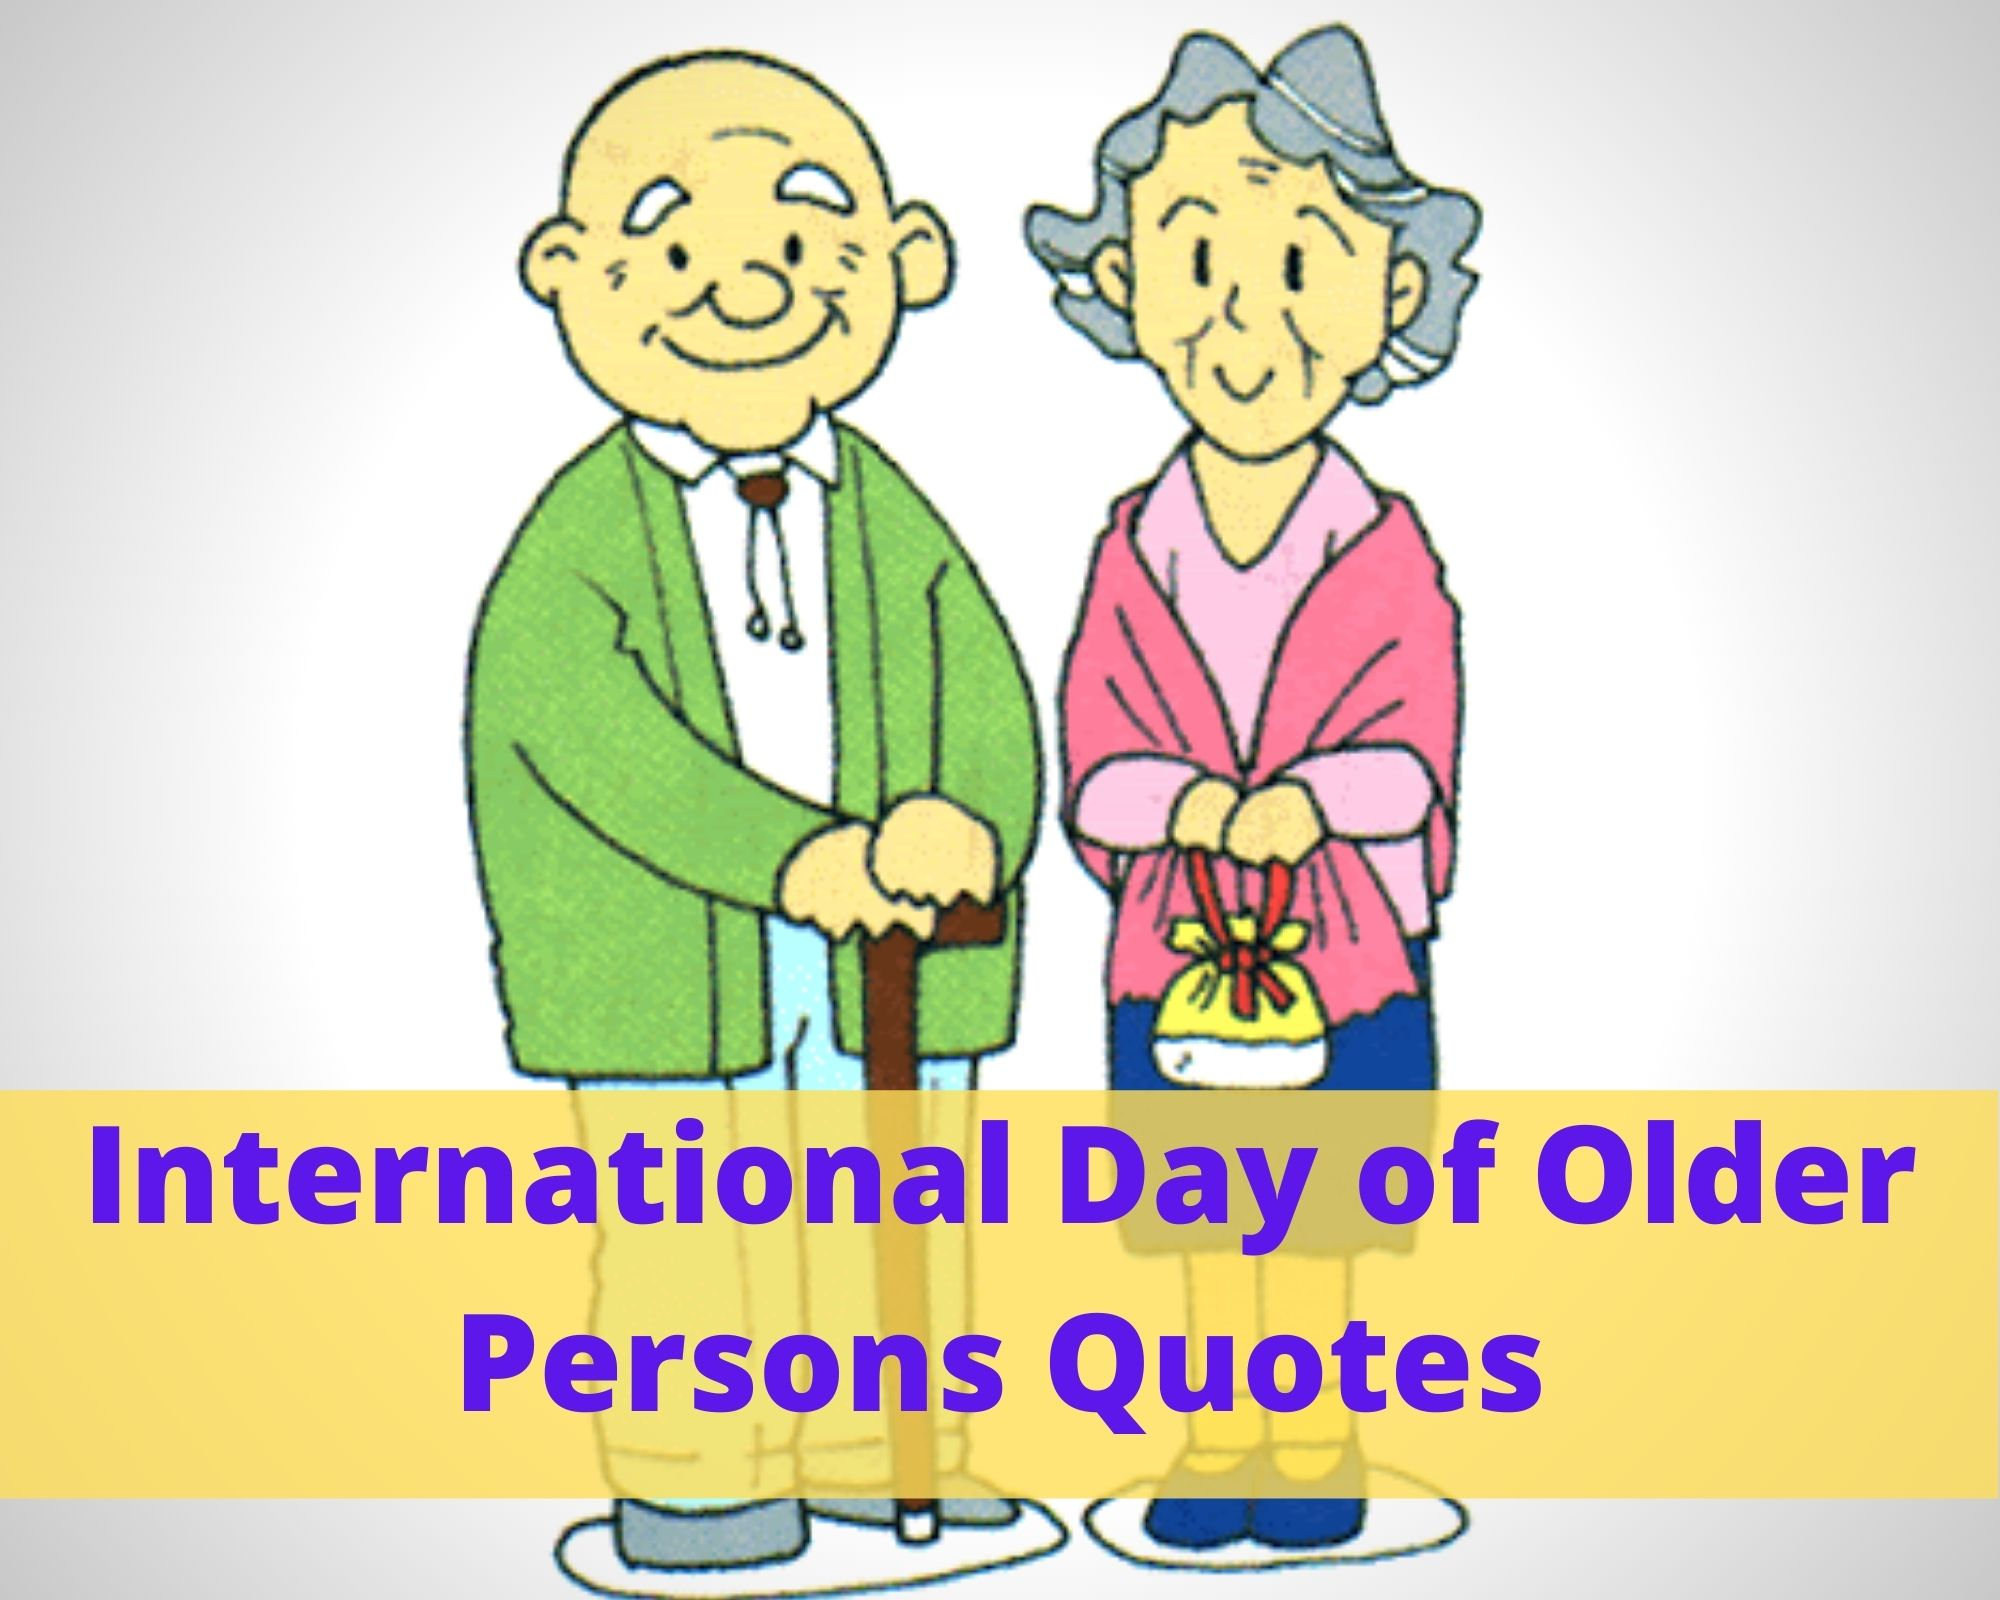 International Day of Older Persons (1)